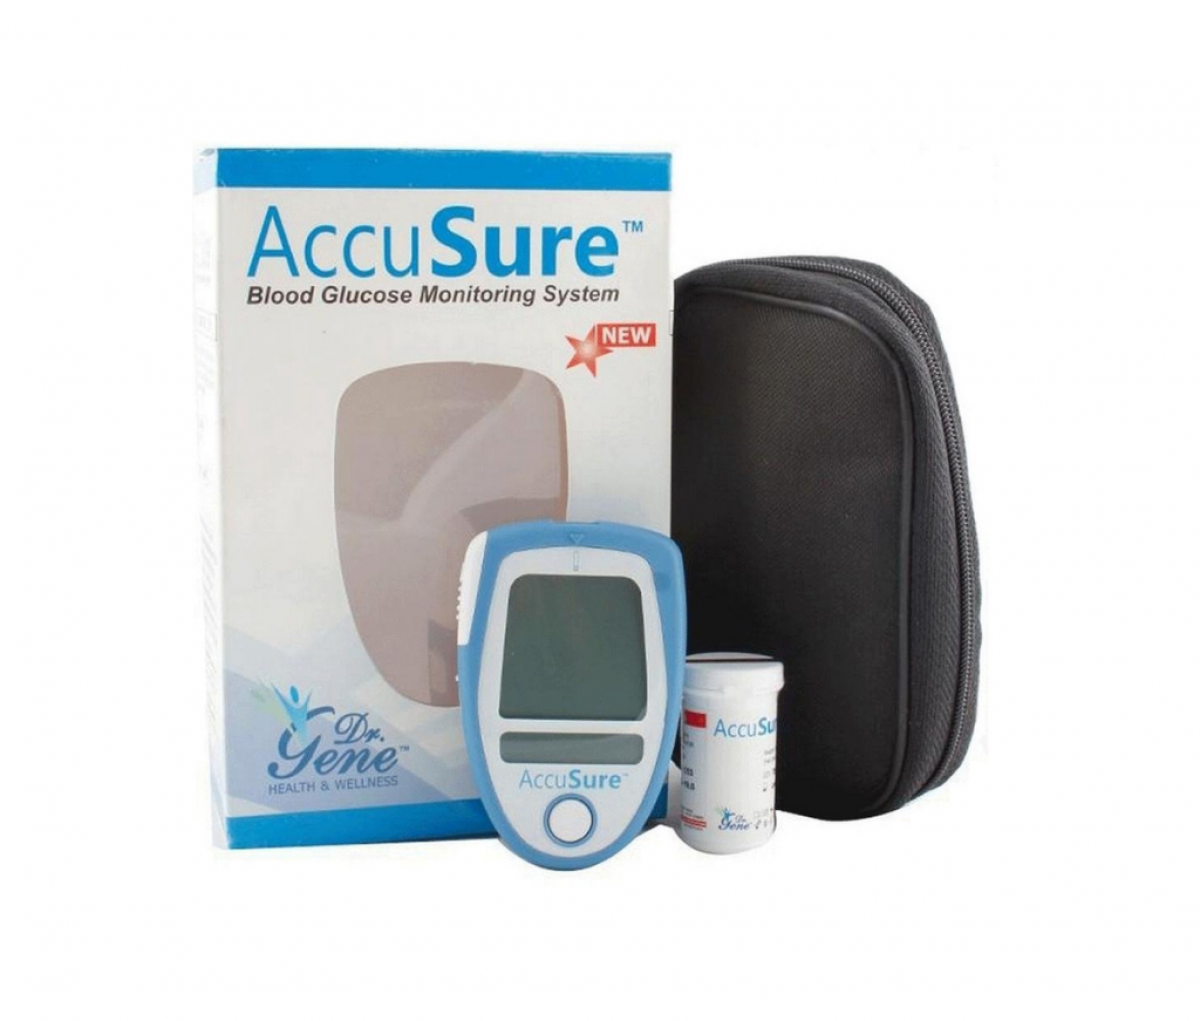 Dr. Gene Accusure Blood Glucose Monitoring System with 10 Strips